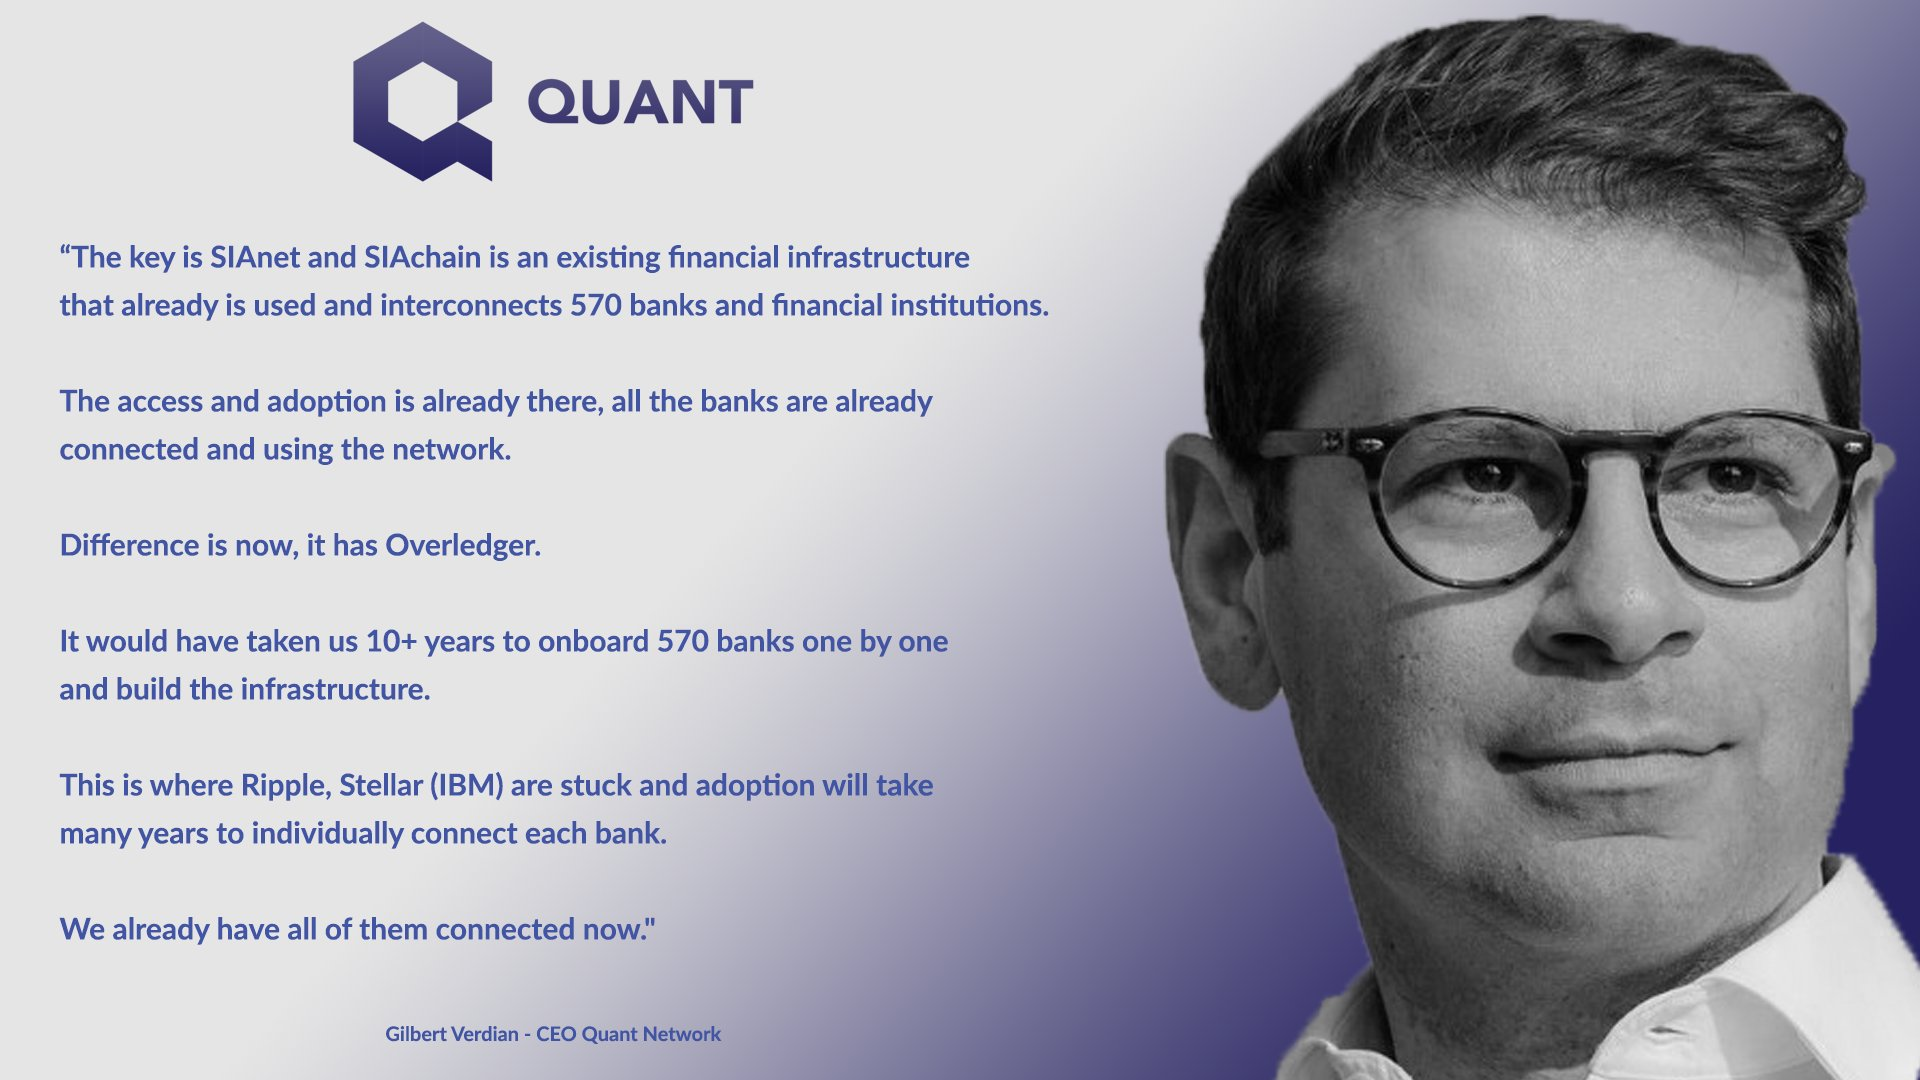 """✅ """"The key is SIAnet & SIAchain is an existing infrastructure that already is used and interconnects 570 banks and financial institutions""""  ✅ """"All the banks are already connected and using the network... Difference is now, it has #Overledger""""  $QNT #blockchain #DLT #crypto #SIA https://t.co/jq6zC2tgDn"""